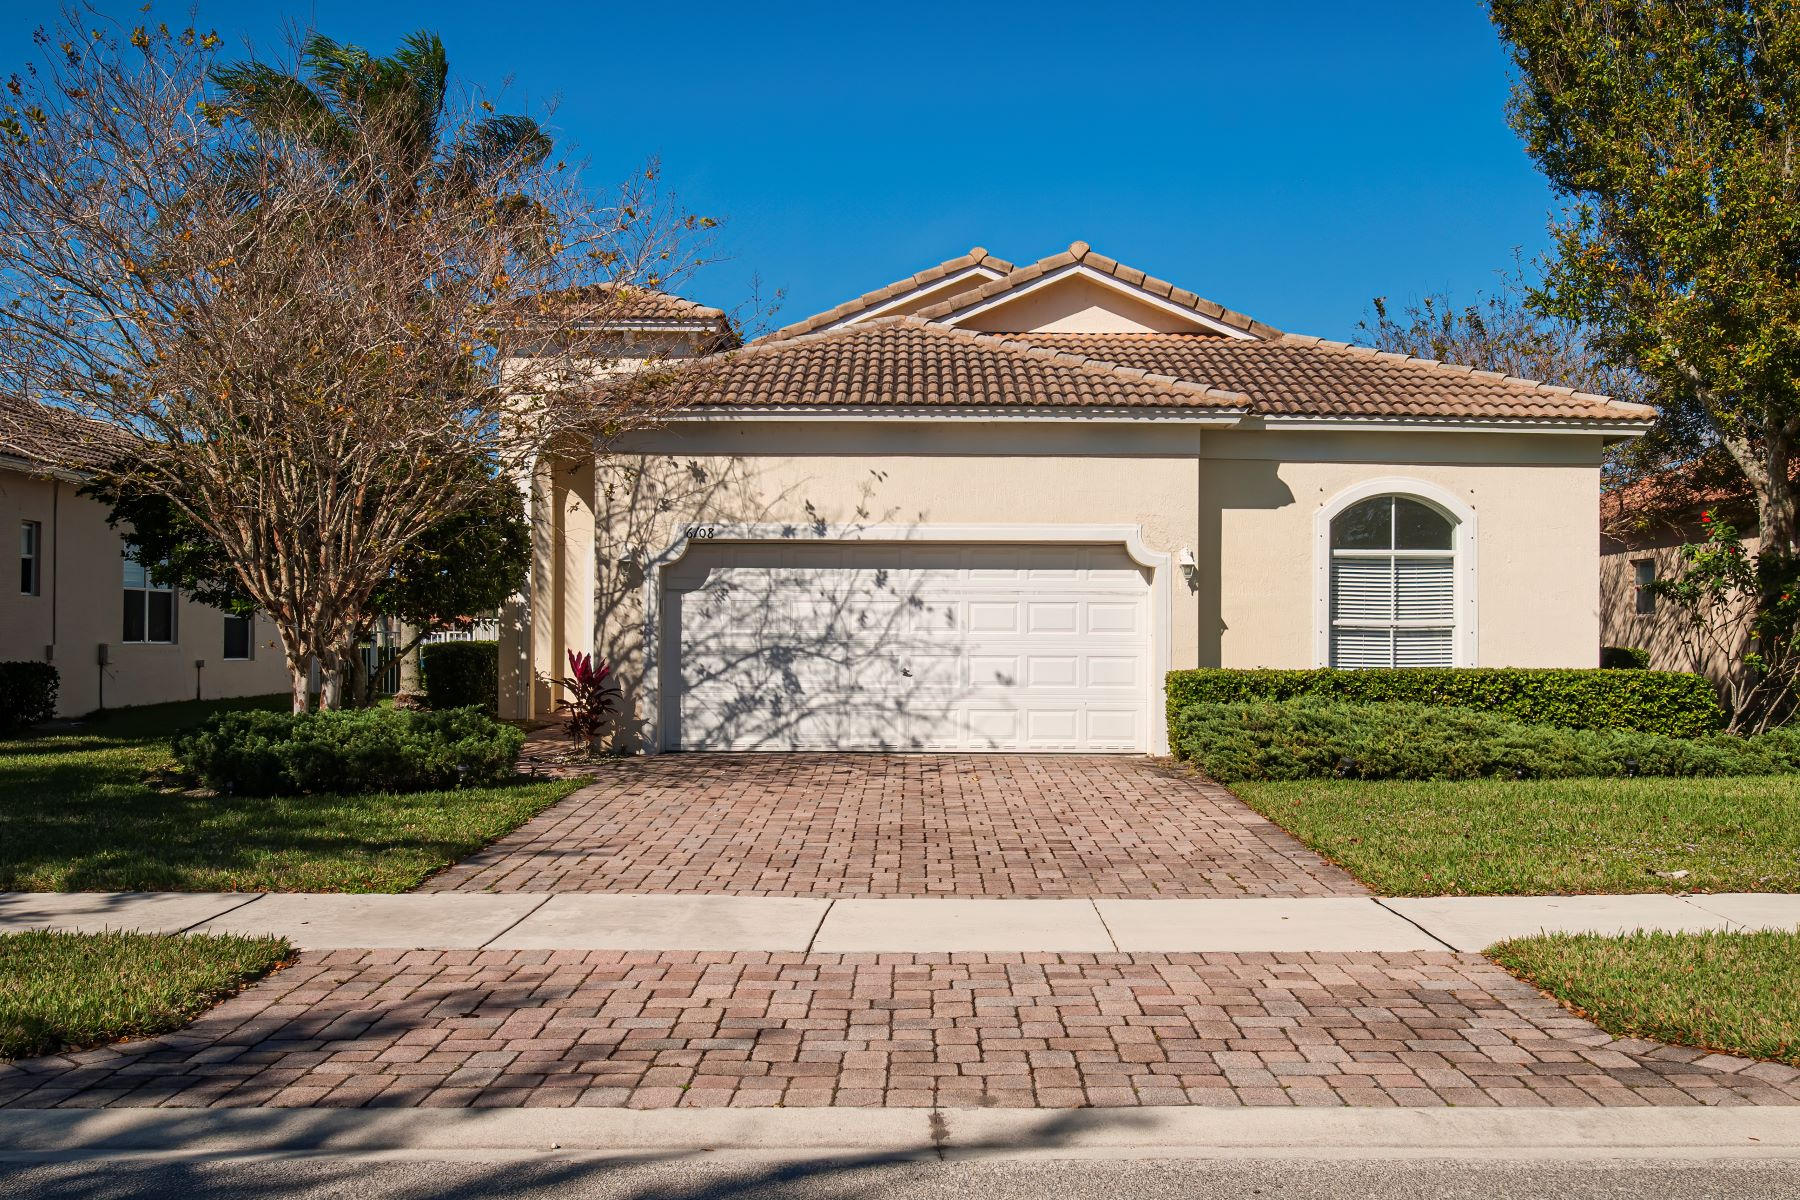 Single Family Homes for Sale at Lake Front Pool Home 6108 Santa Margarito Drive Fort Pierce, Florida 34951 United States